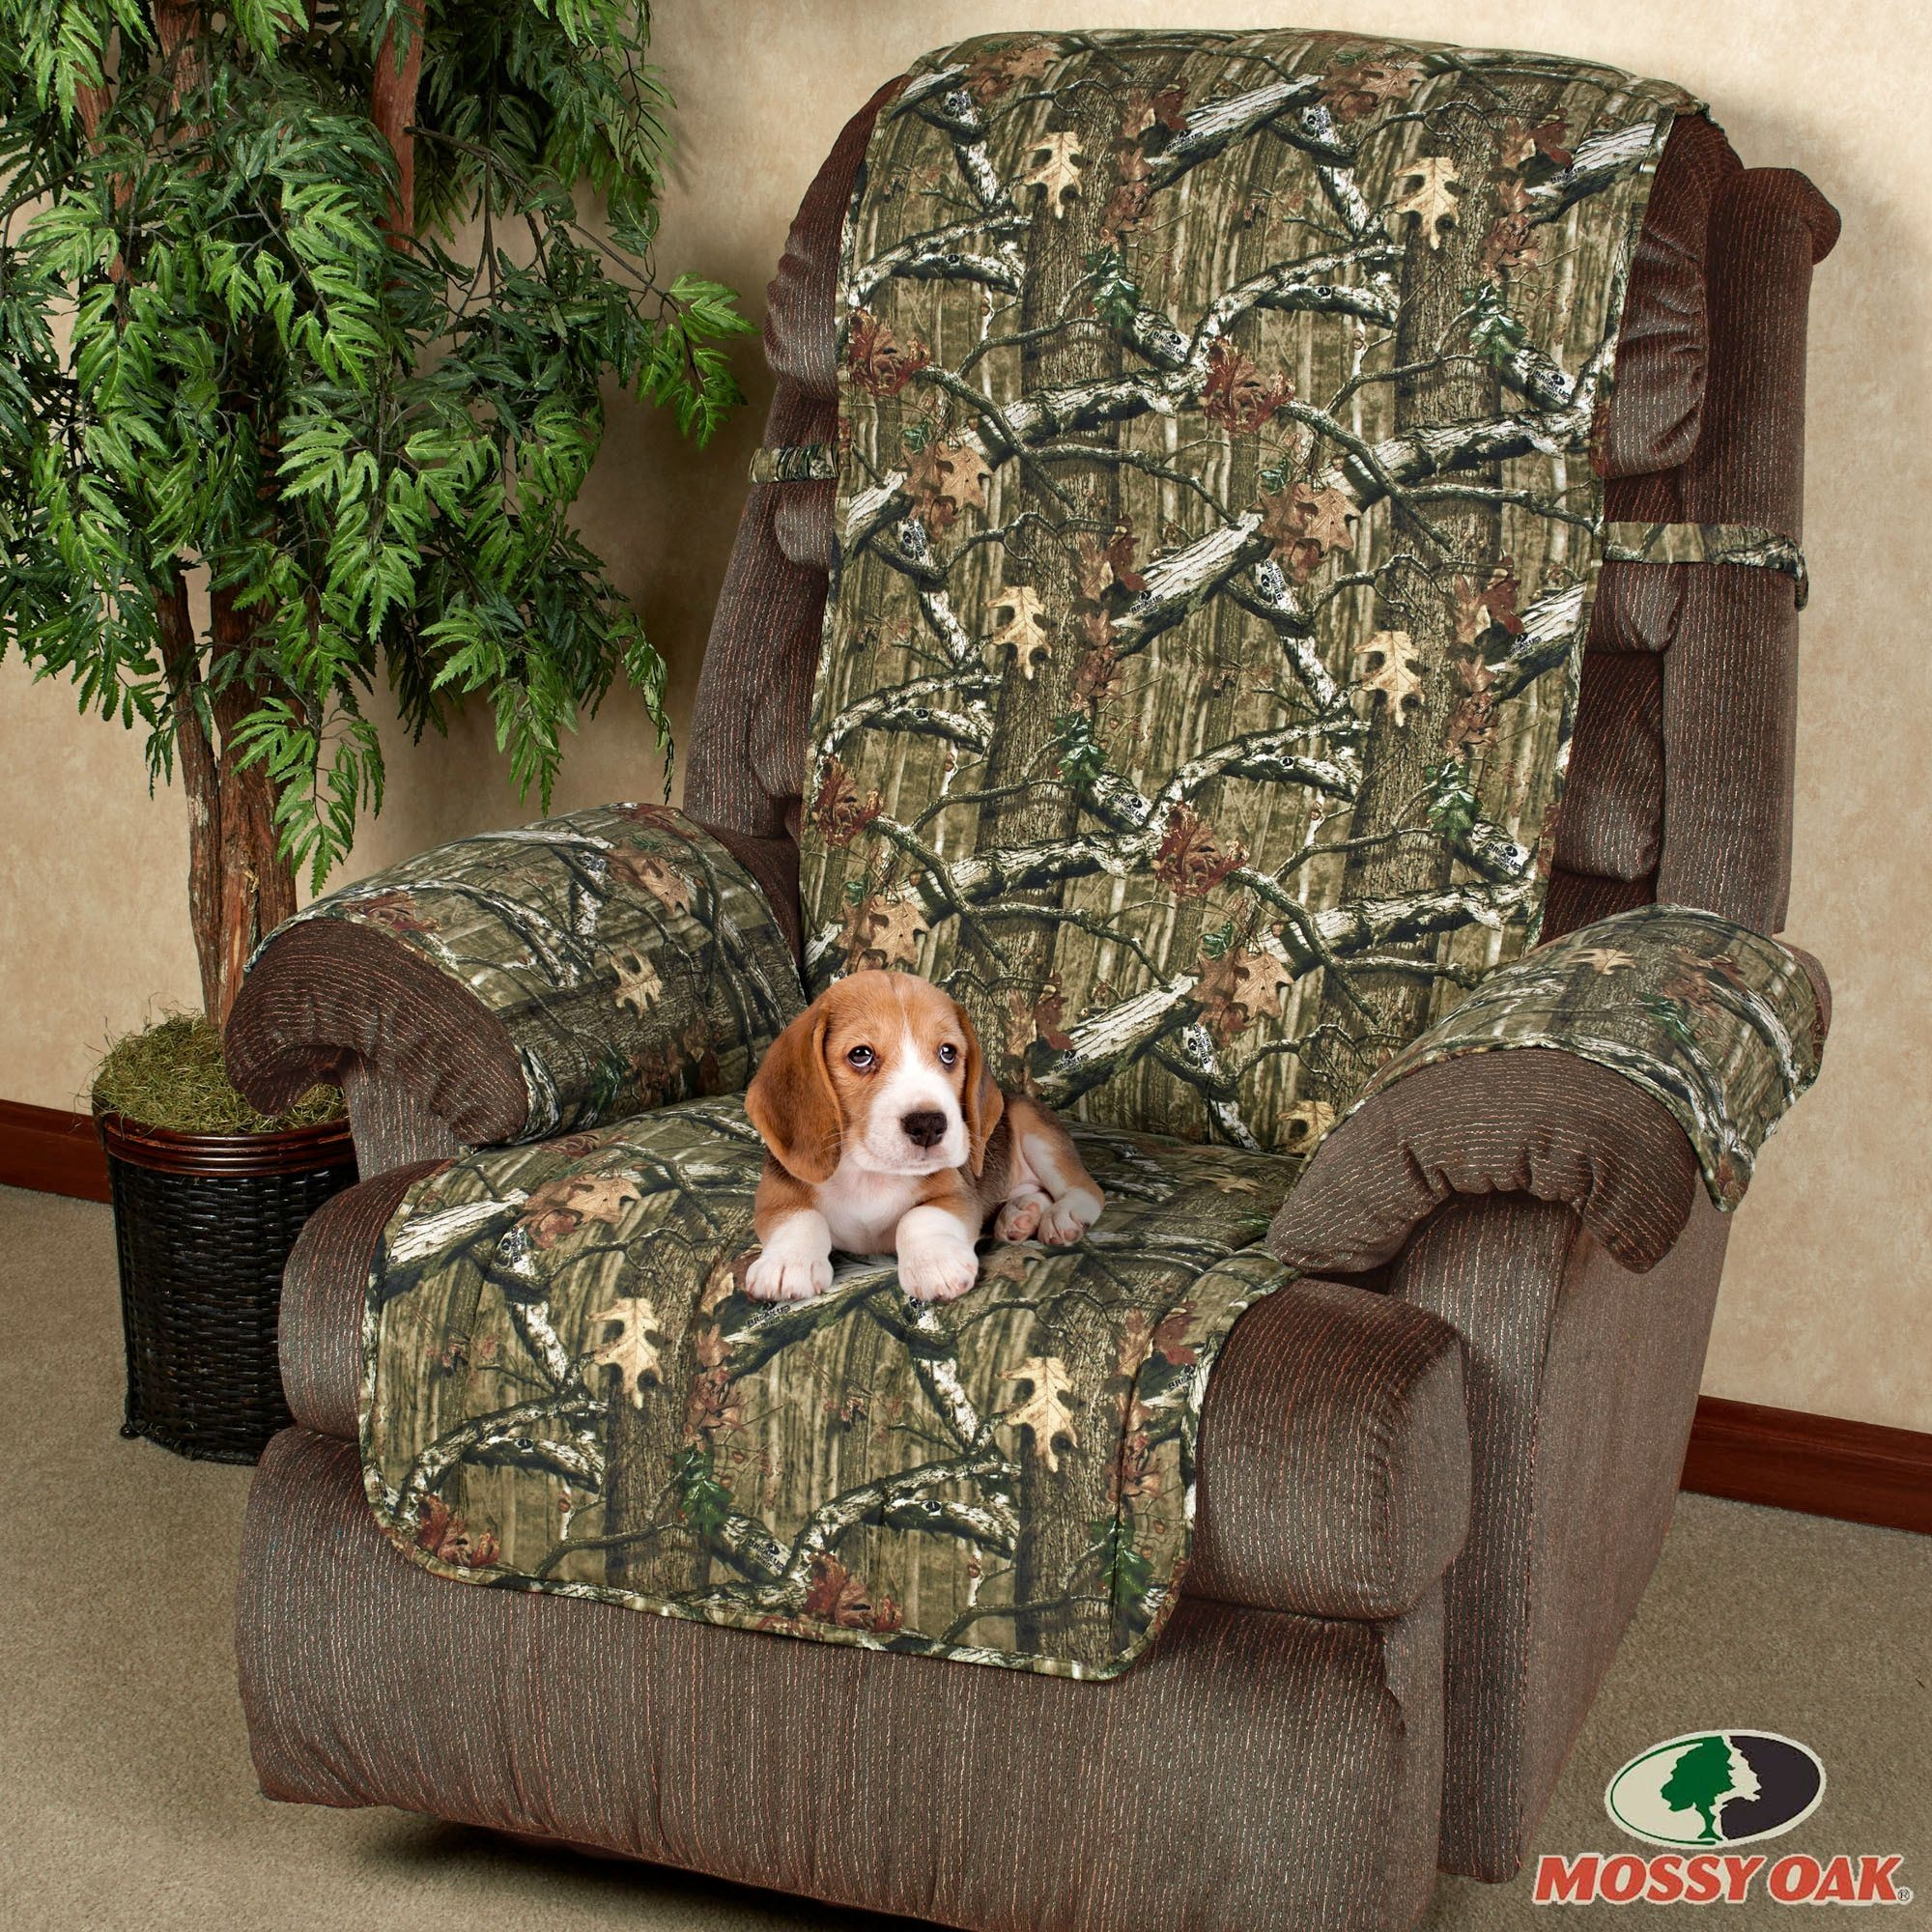 Mossy Oak Break Up Infinity Camo Furniture Protectors Pertaining To Camo Sofa Cover (#6 of 12)